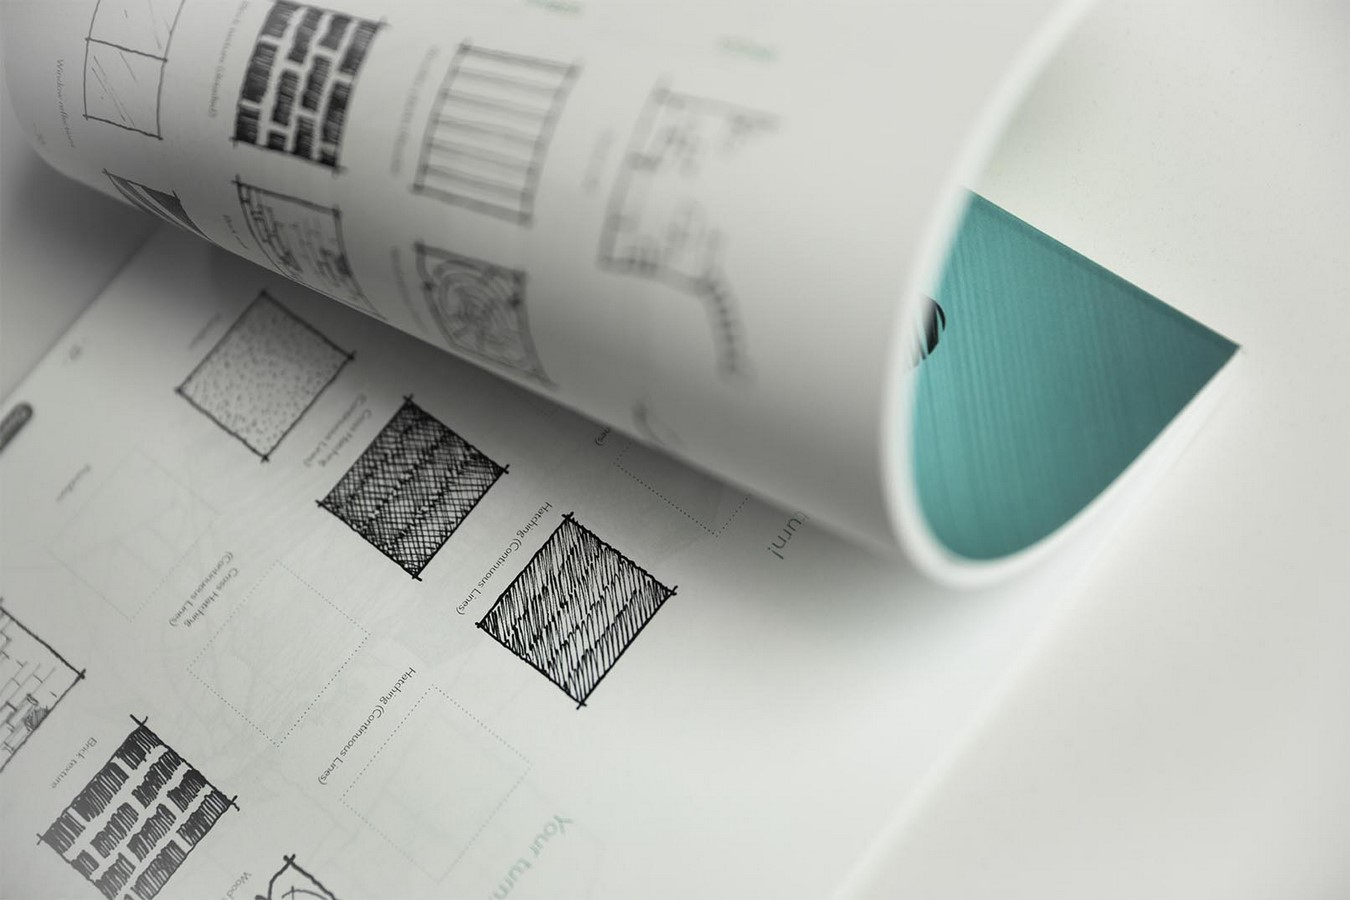 10 Books related to Architectural Sketching everyone should read - Sheet2